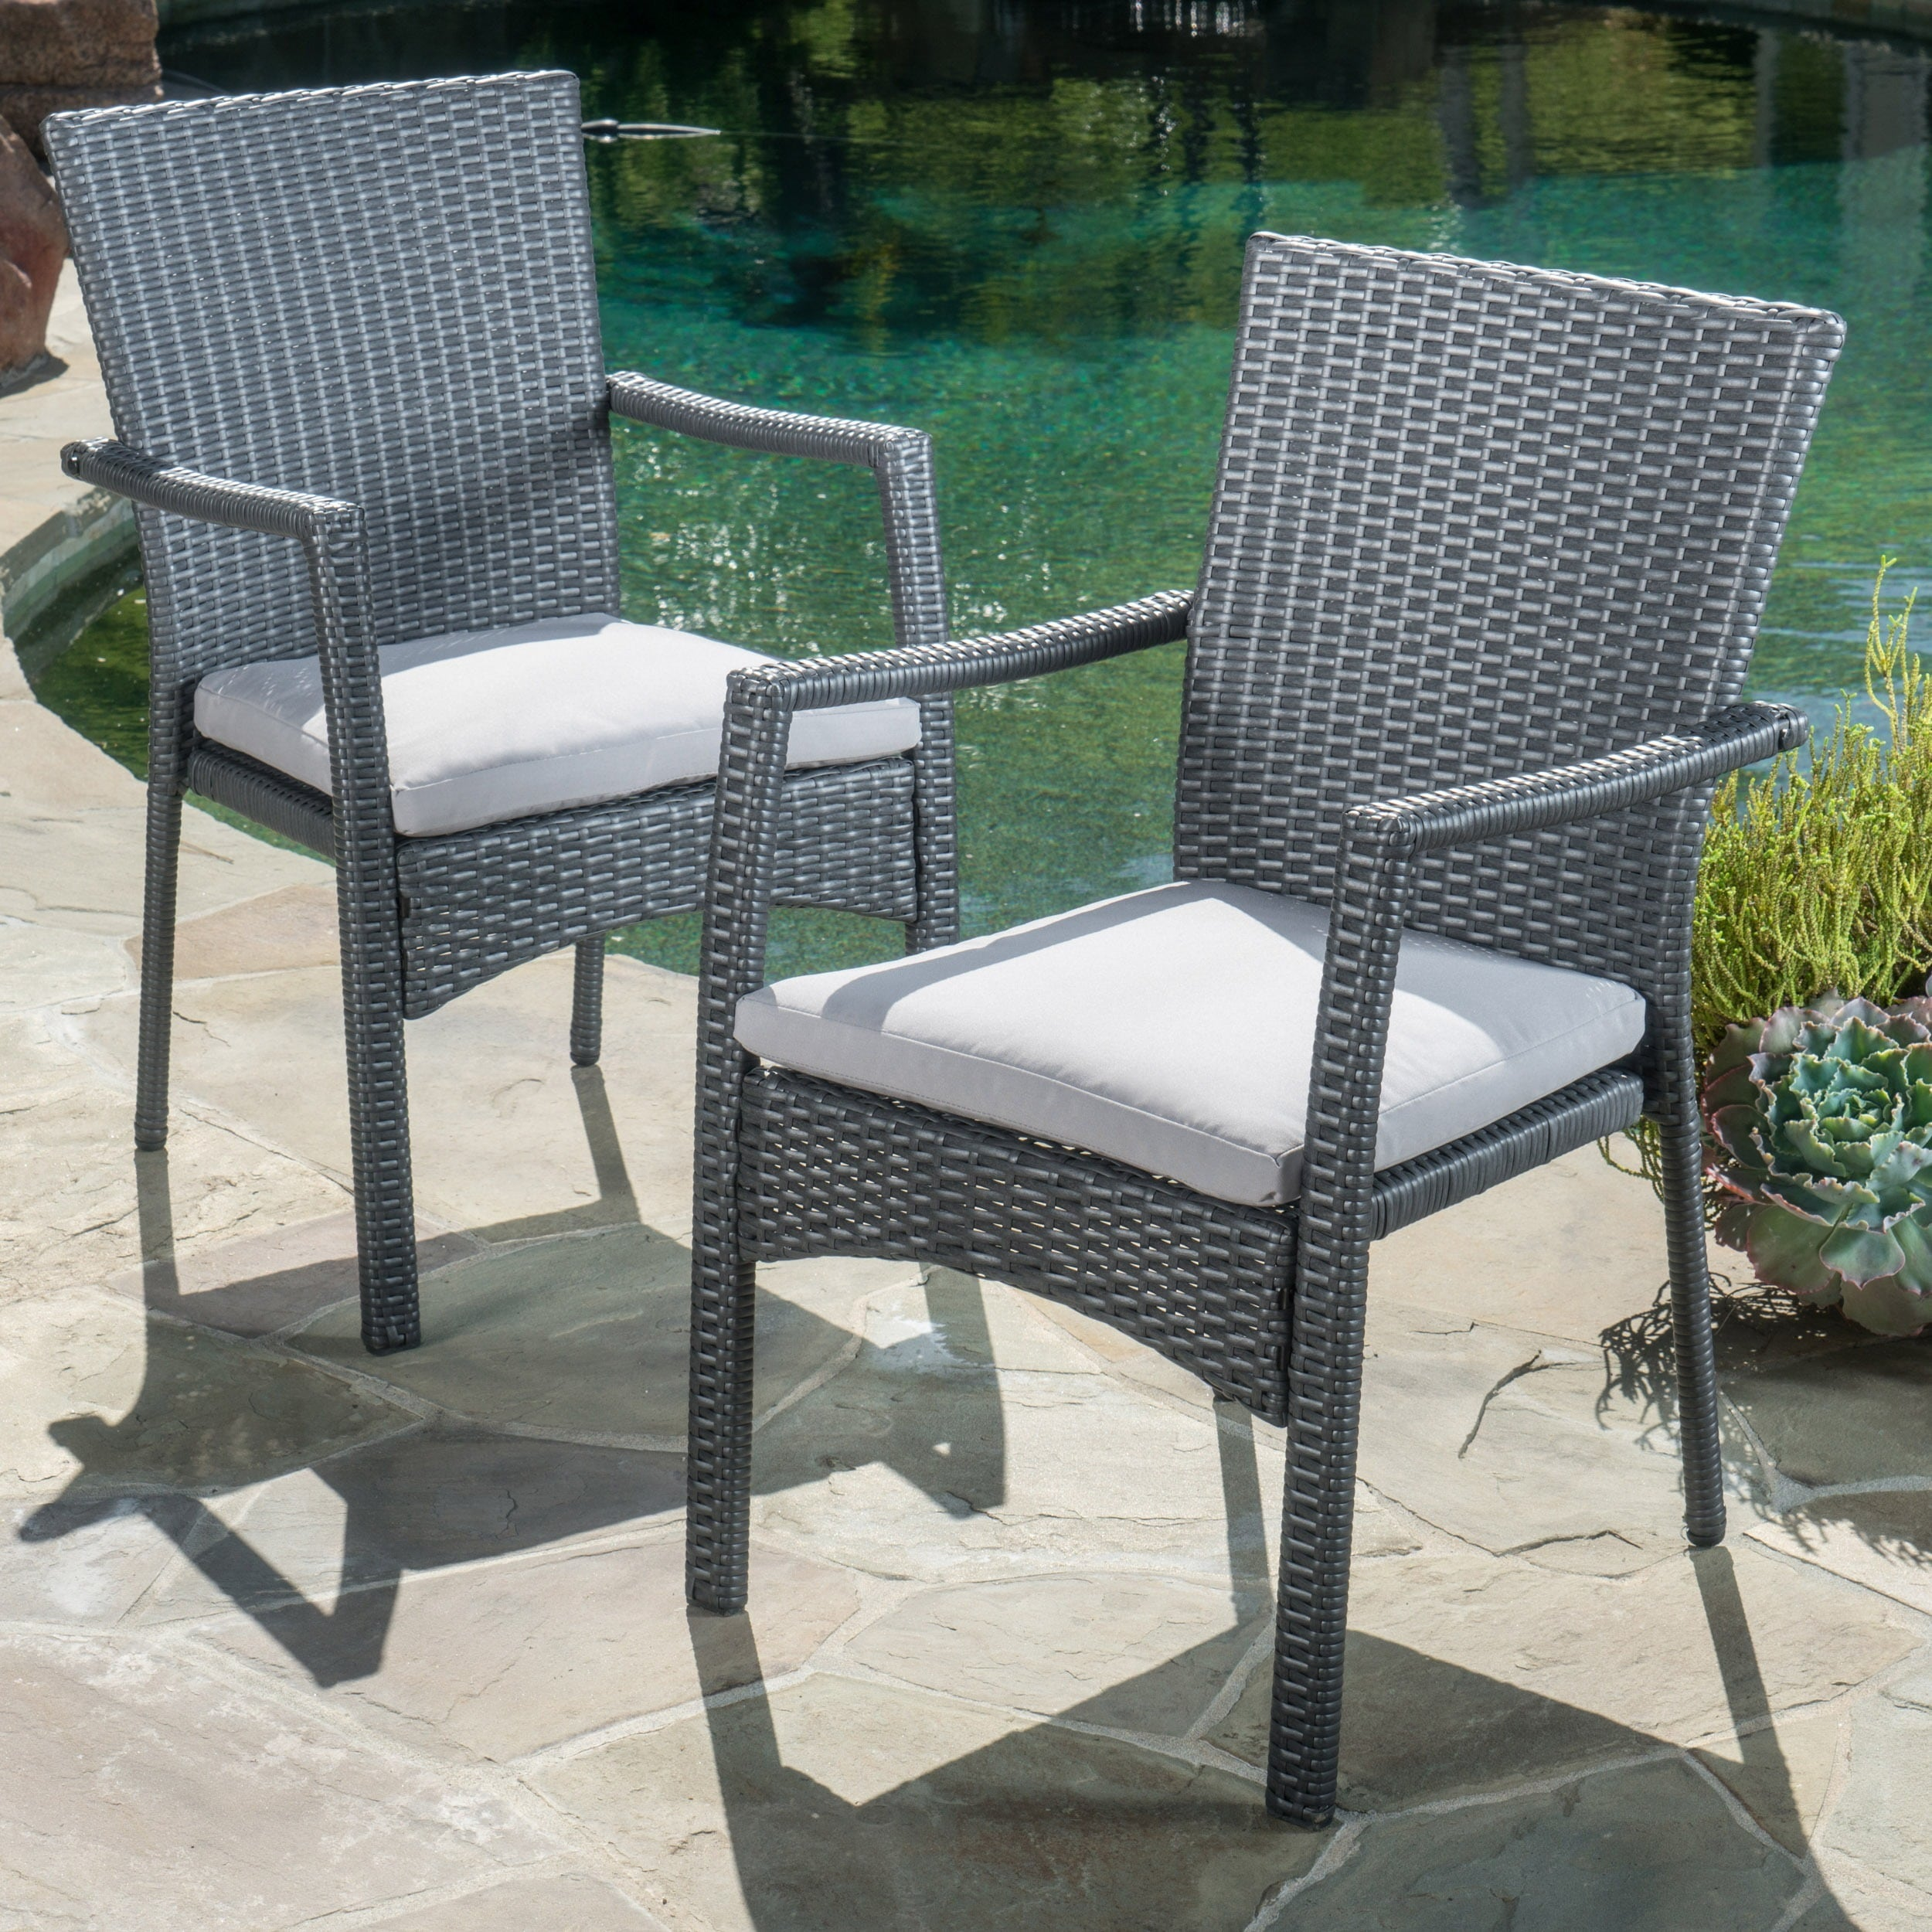 Outdoor Wicker Dining Chairs Details About Corsica Outdoor Wicker Dining Chair With Cushion Set Of 2 By Christopher